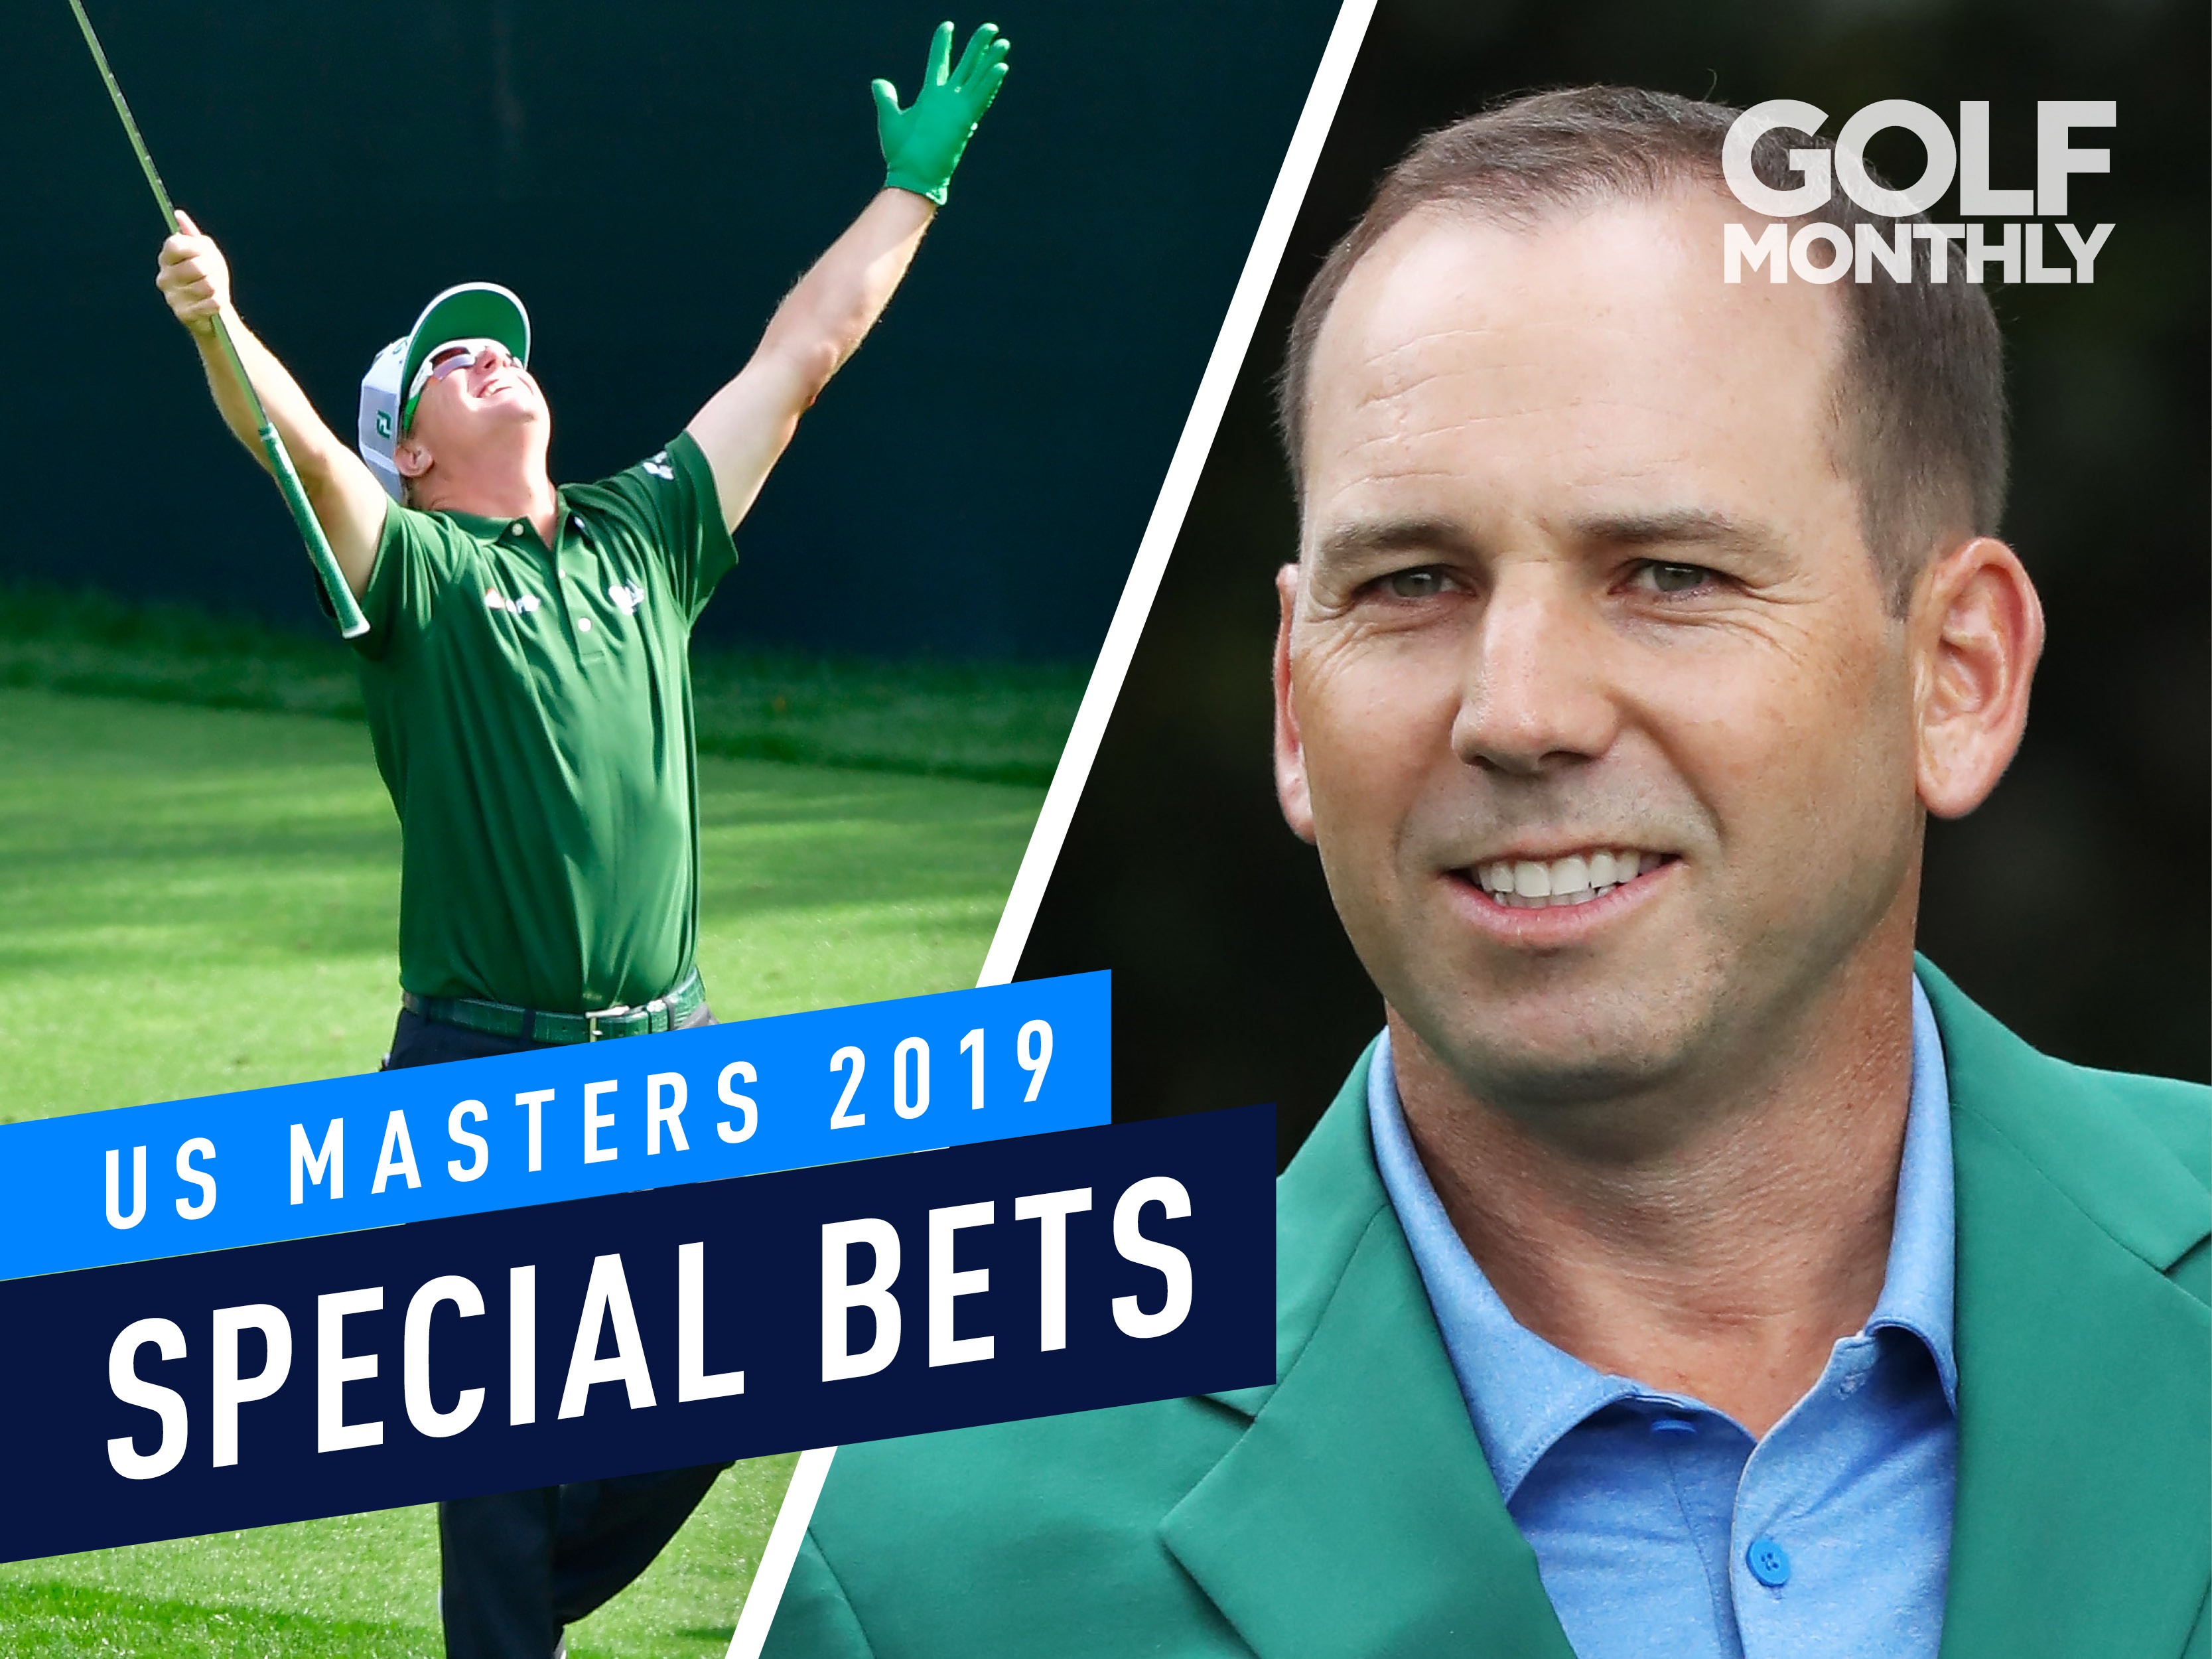 Masters golf betting specials sparrer mineralien mining bitcoins